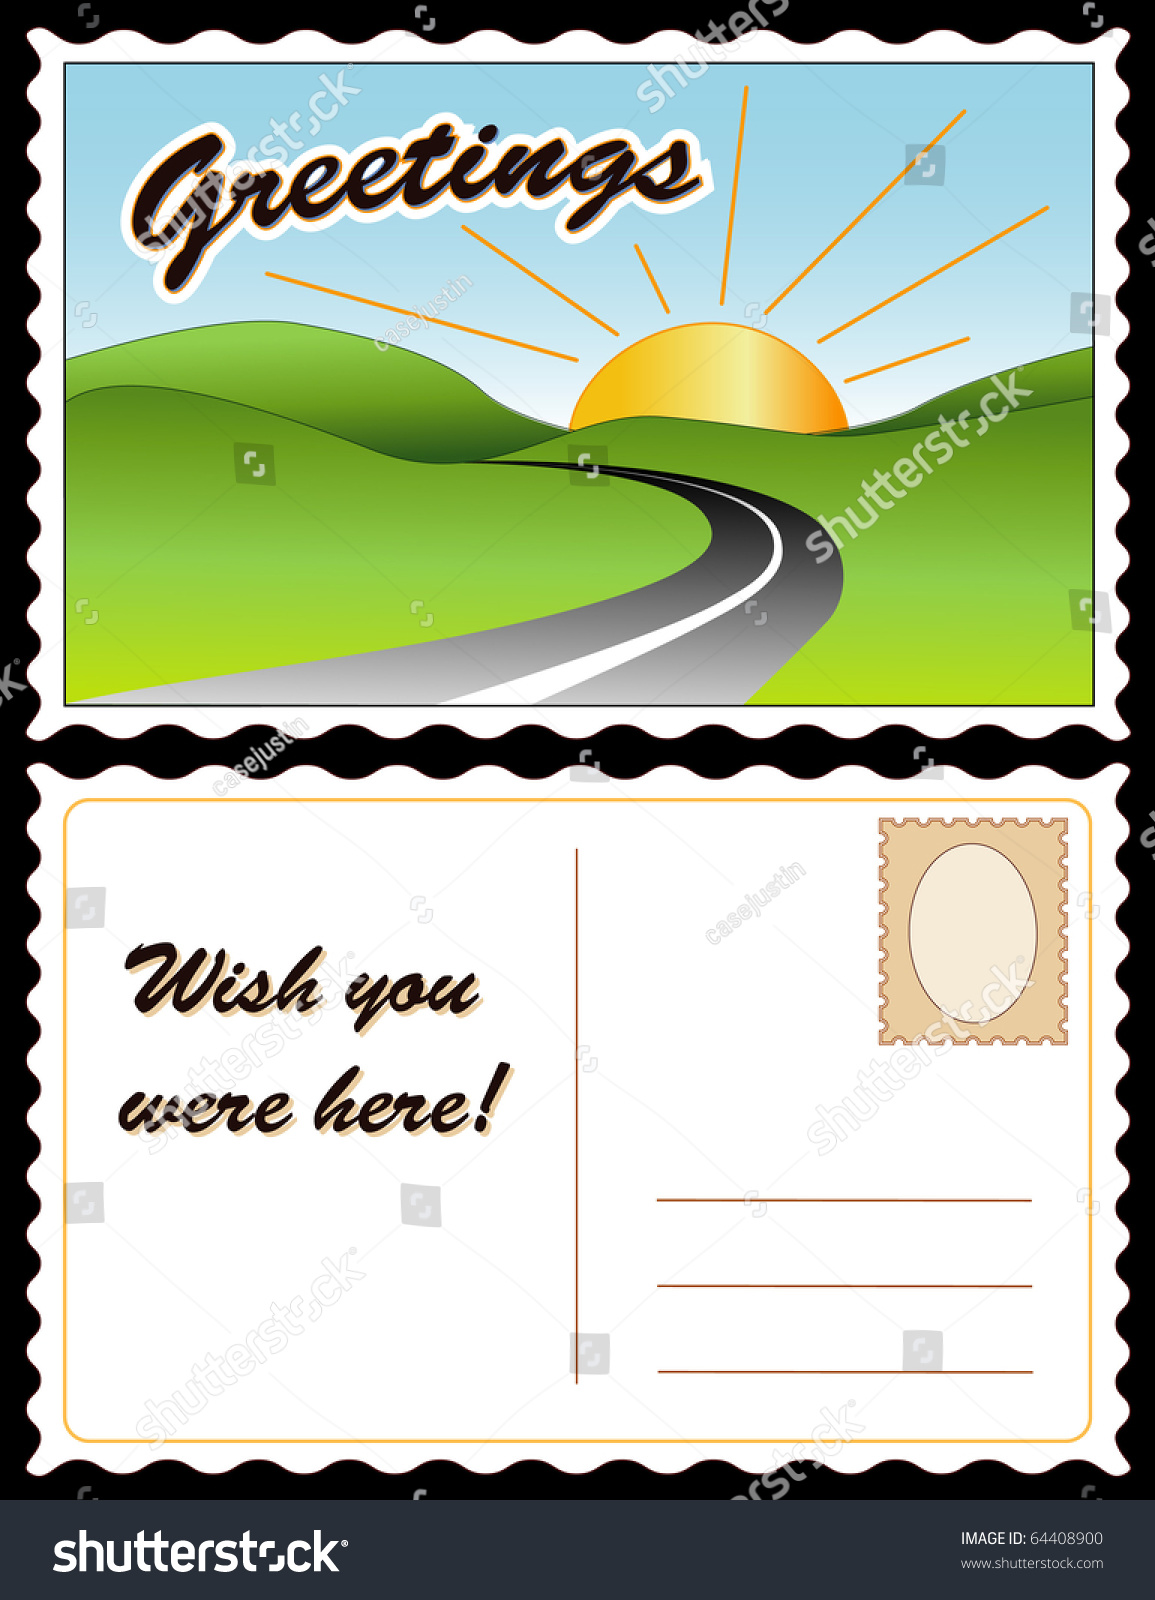 POSTCARD Greetings Wish You Were Here Full Size Postcard Front And Back